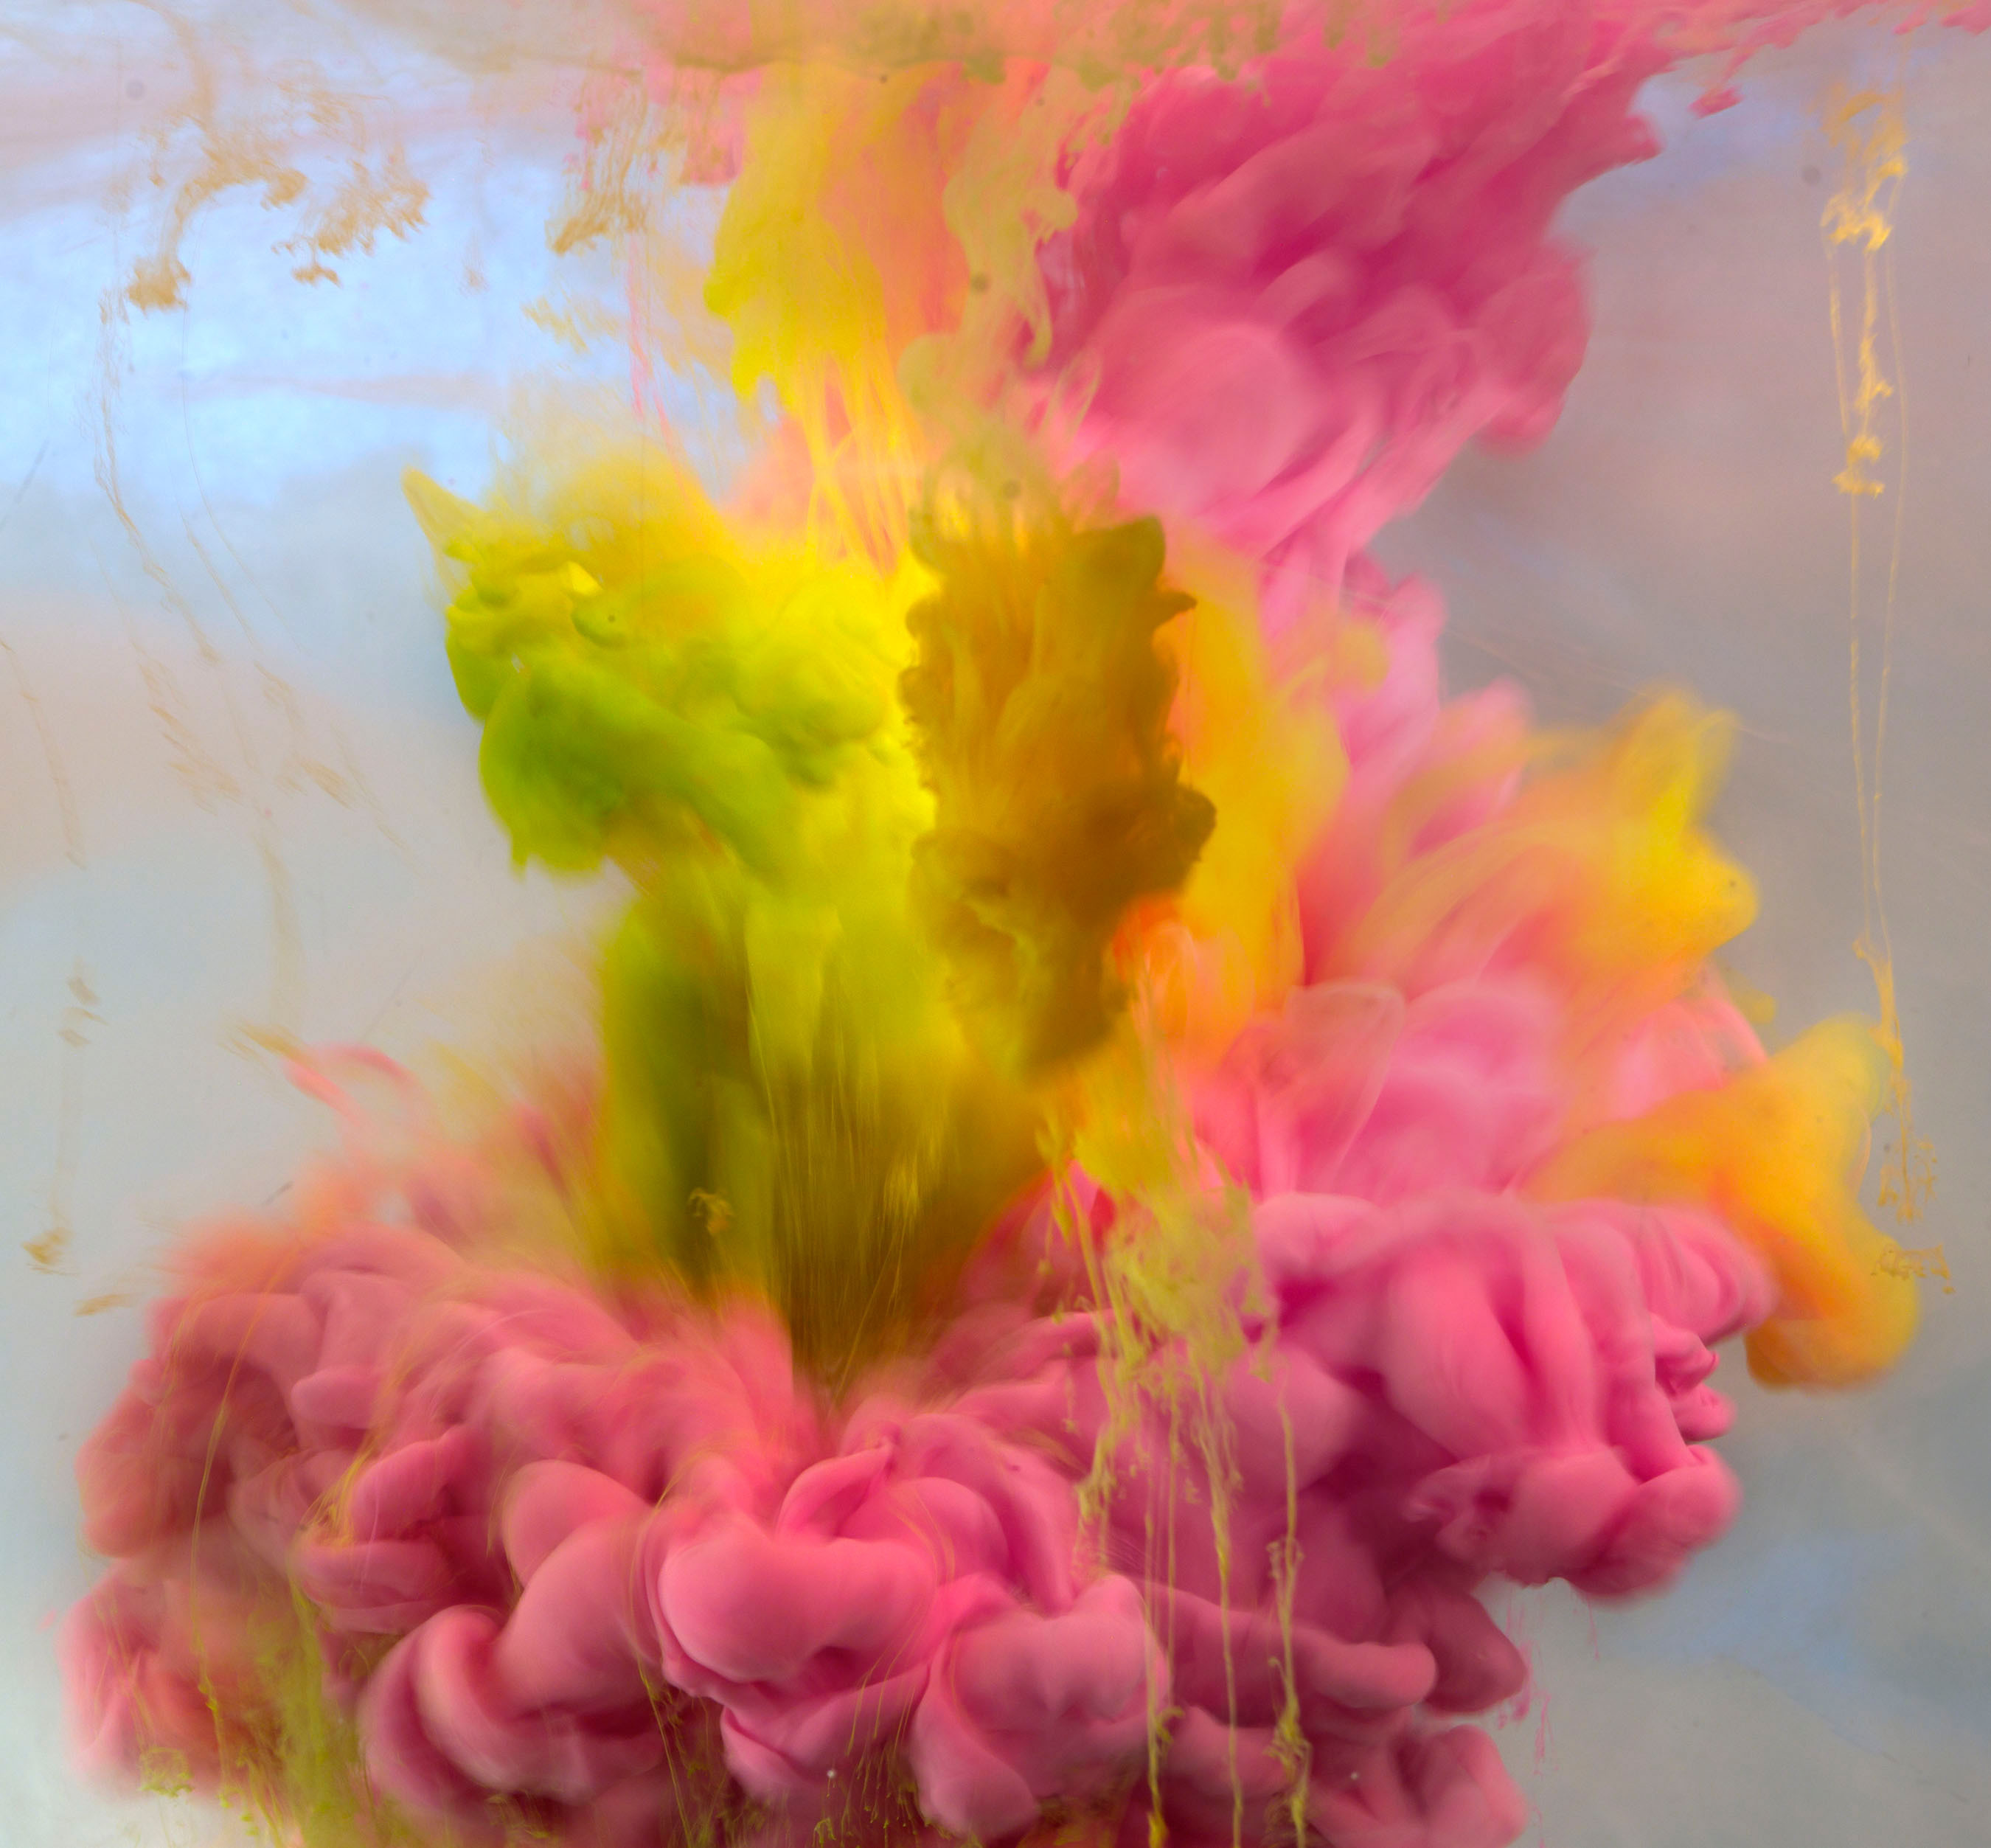 World First Solo Show for Kim Keever 'Underwater' Abstracts Opens at Waterhouse & Dodd Tonight